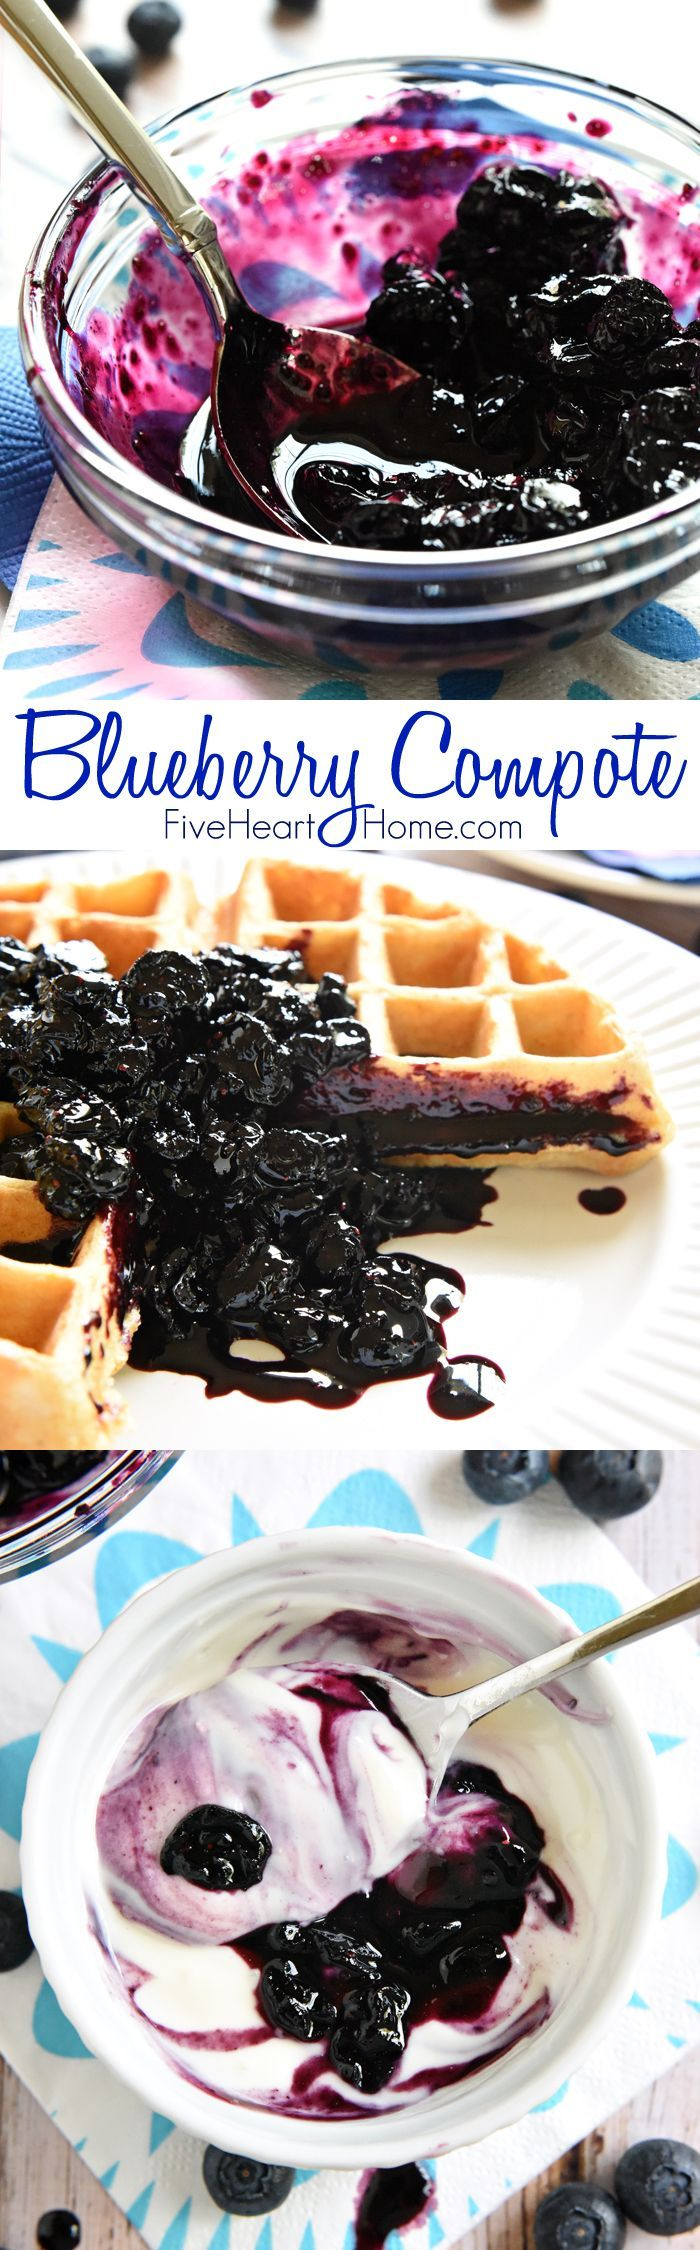 Blueberry Compote ~ frozen blueberries are cooked down into a glossy compote, sweetened with maple syrup and delicious over waffles, pancakes, pound cake, yogurt, ice cream, and so much more! | FiveHeartHome.com